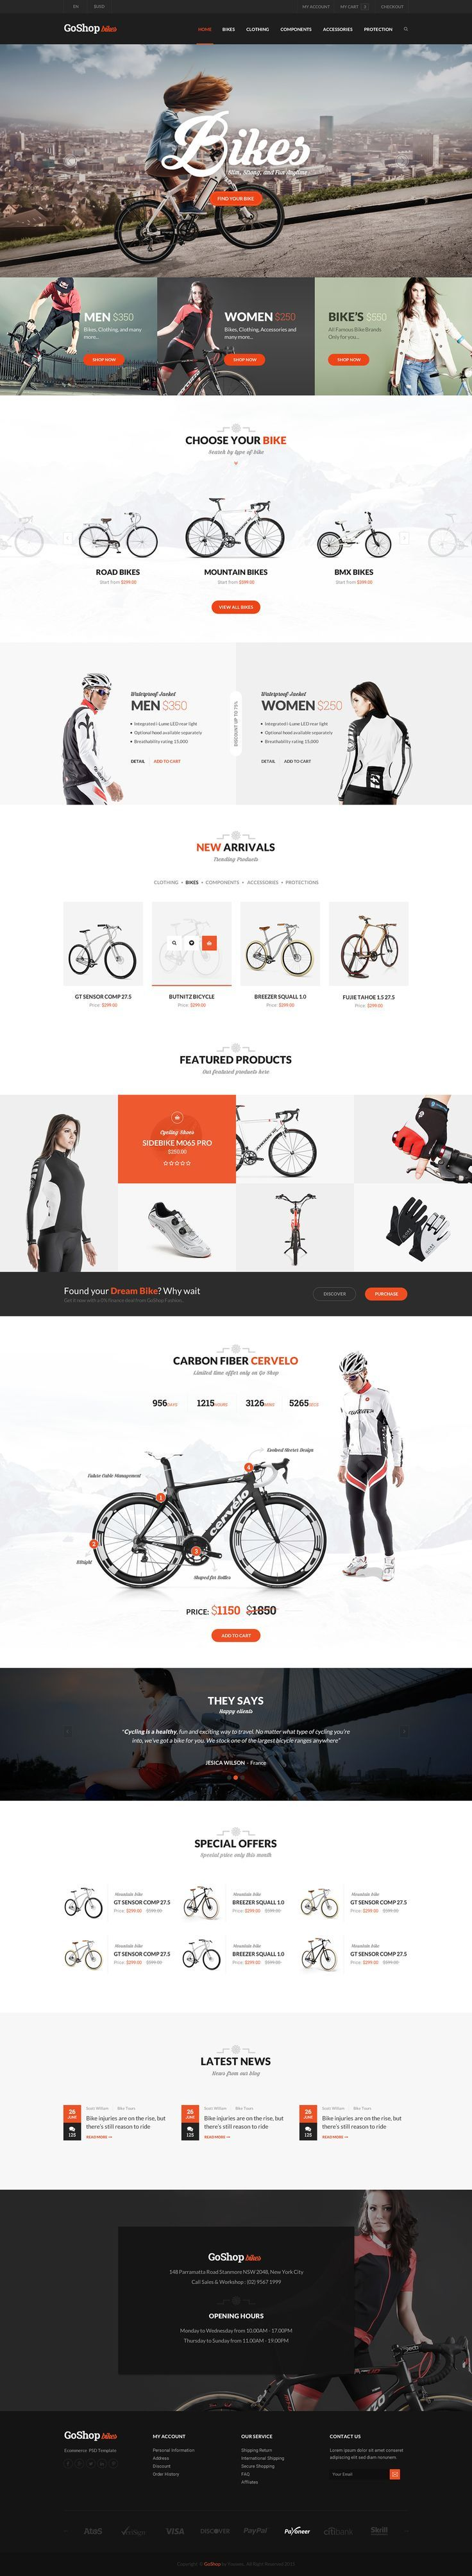 Go Shop Ecommerce PSD Template on Web Design Served. If you like UX, design, or…